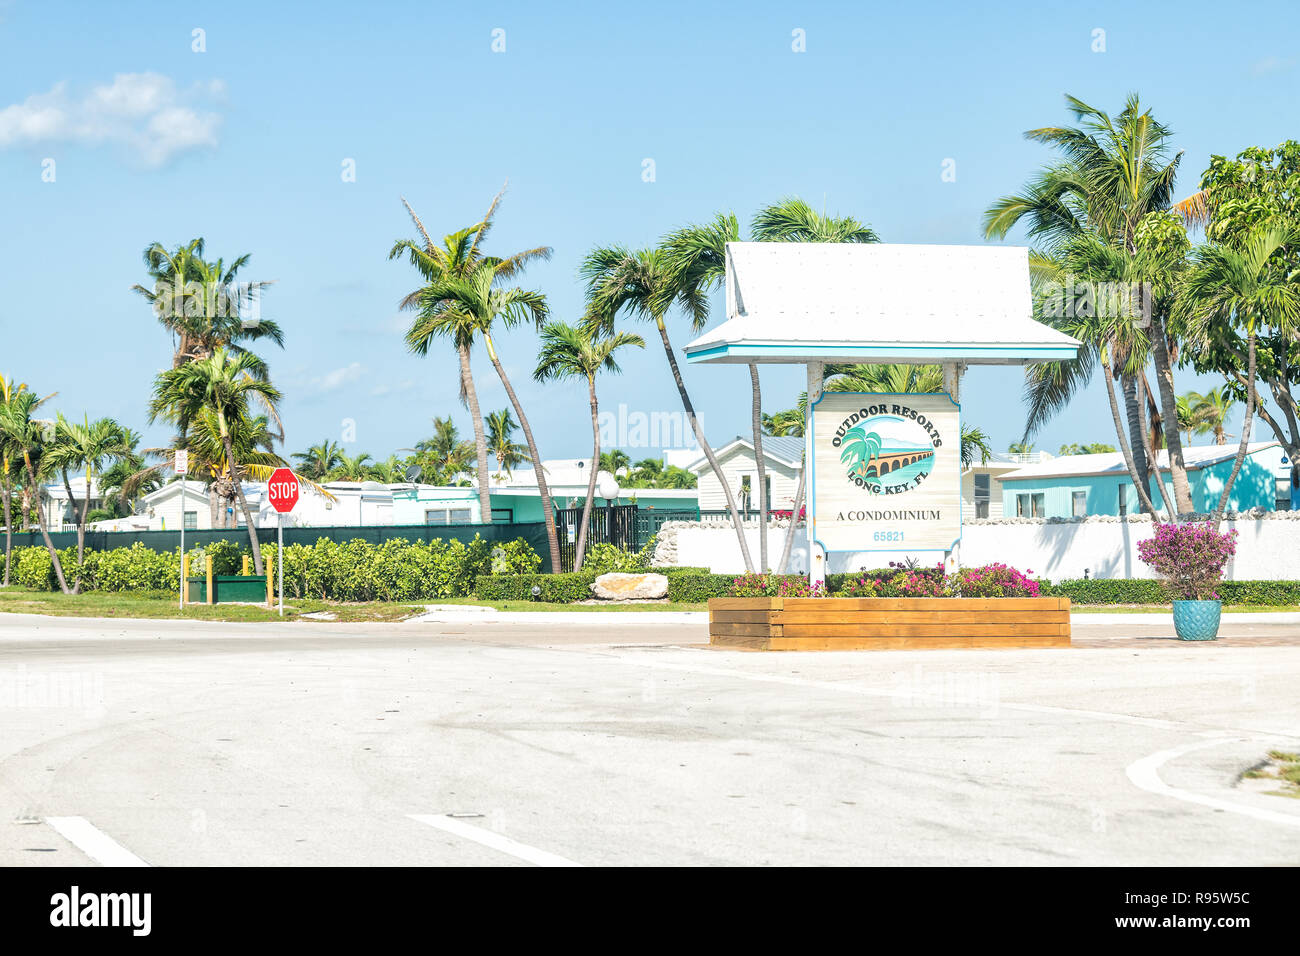 Long Key, USA - May 1, 2018: Outdoor resorts condominium complex sign in Monroe county of Florida keys with many beach vacation houses, homes, palm tr - Stock Image